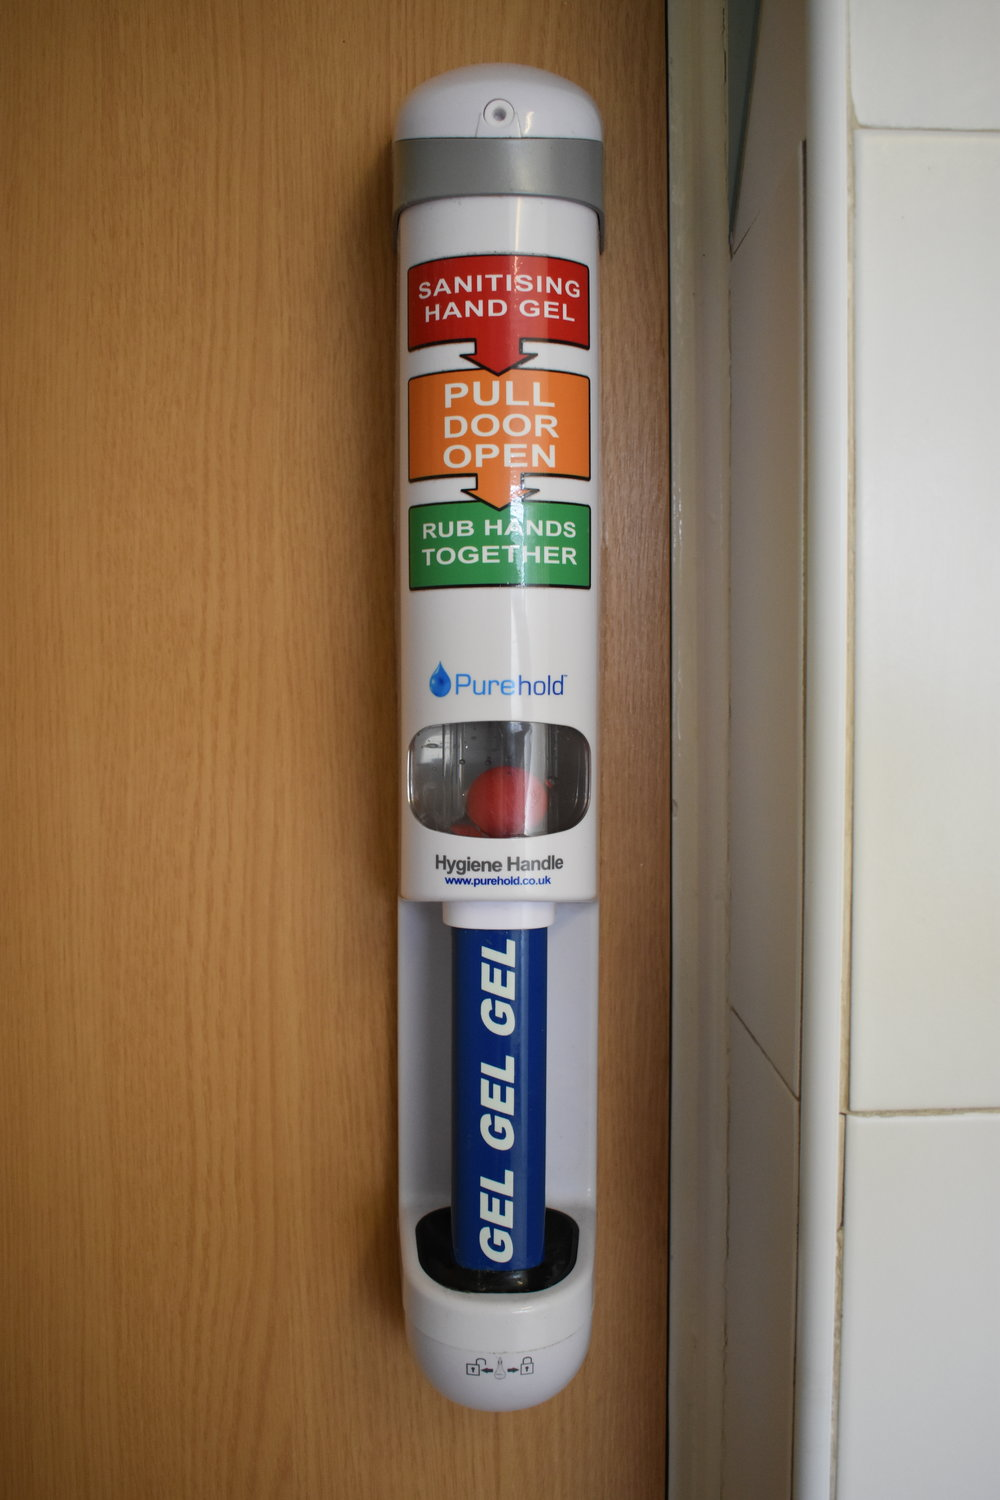 Hand sanitise door handle - helping to make sure people sanitise their hands when leaving the bathroom